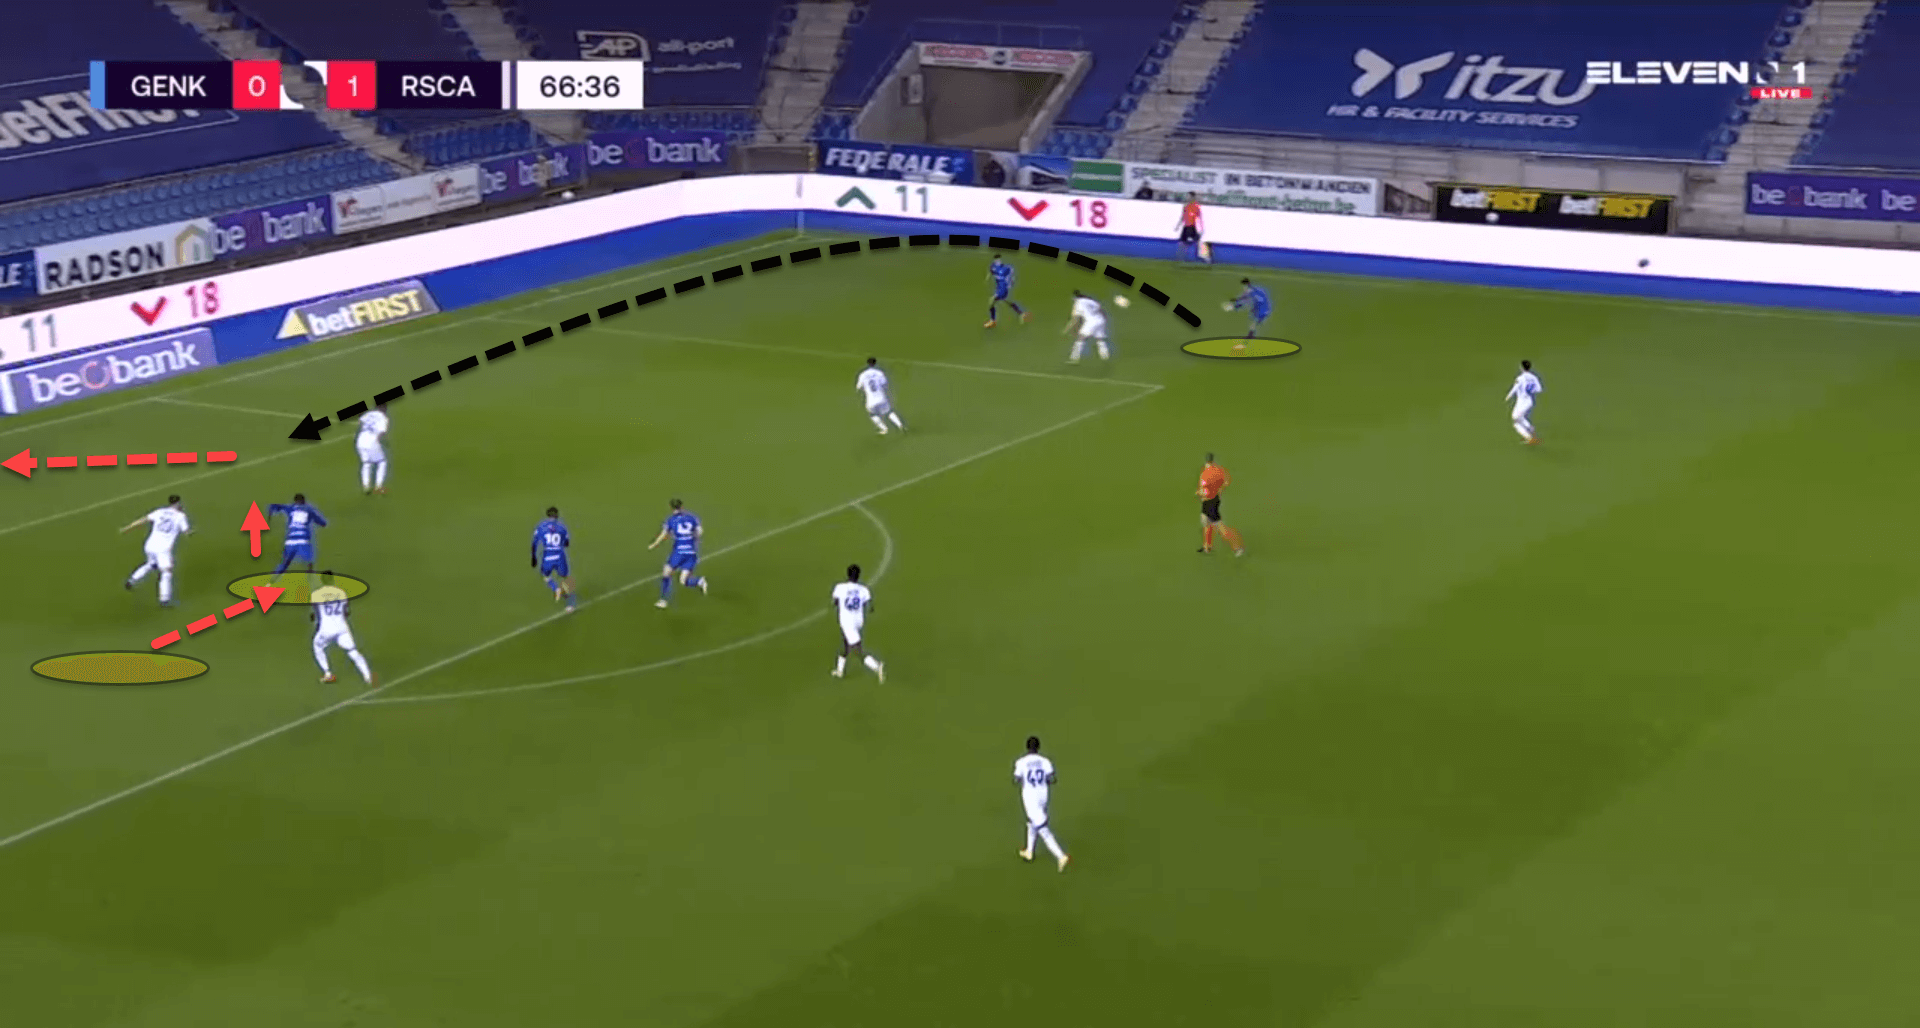 Paul Onuachu: The 37 goal Genk giant linked to Arsenal – scout report